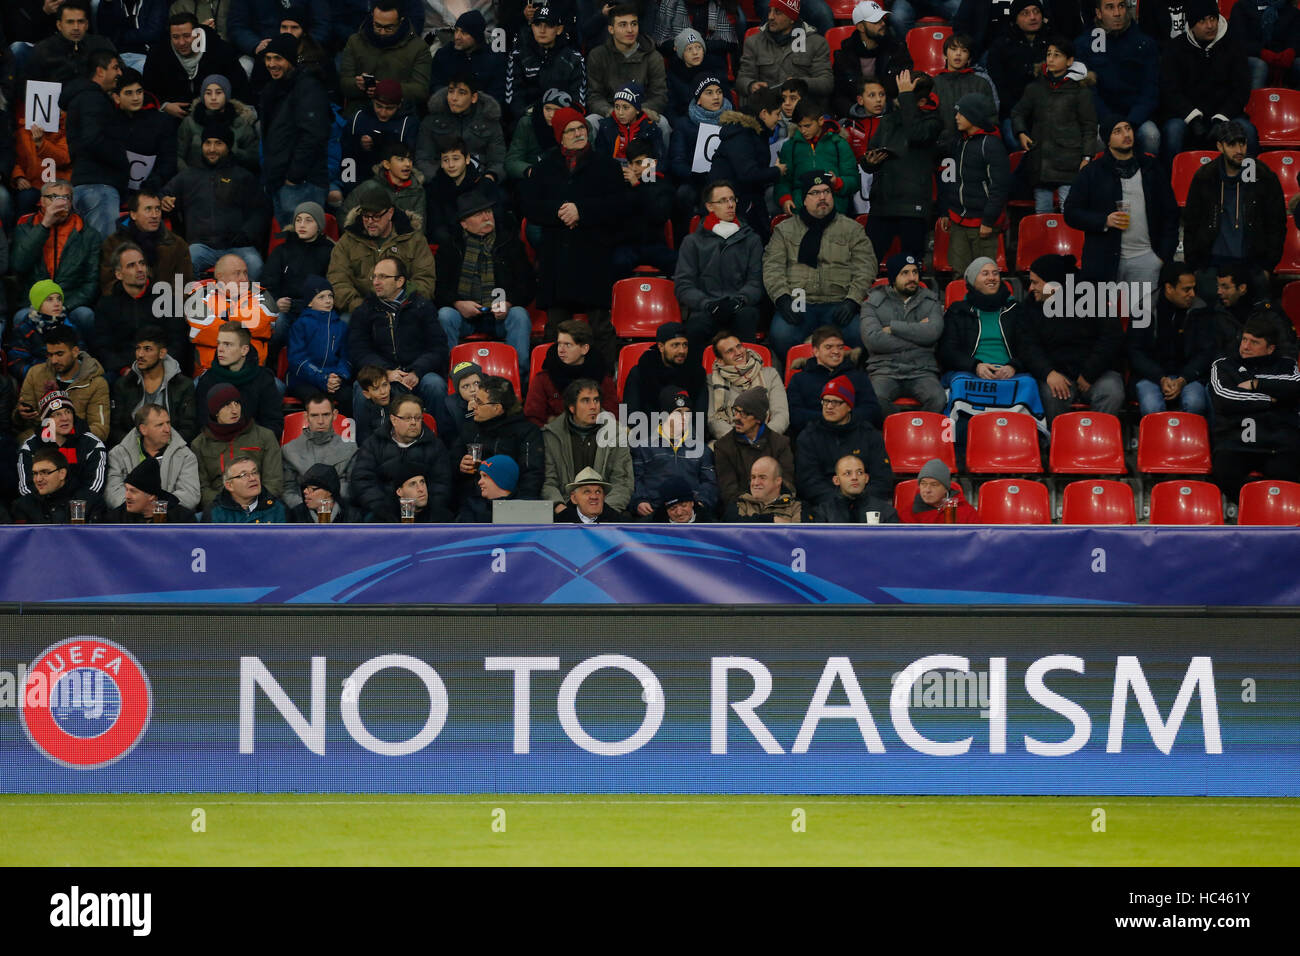 Leverkusen, Germany. 7th December, 2016. Champions League group E, matchday 6, Bayer Leverkusen vs AS Monaco FC: - Stock Image